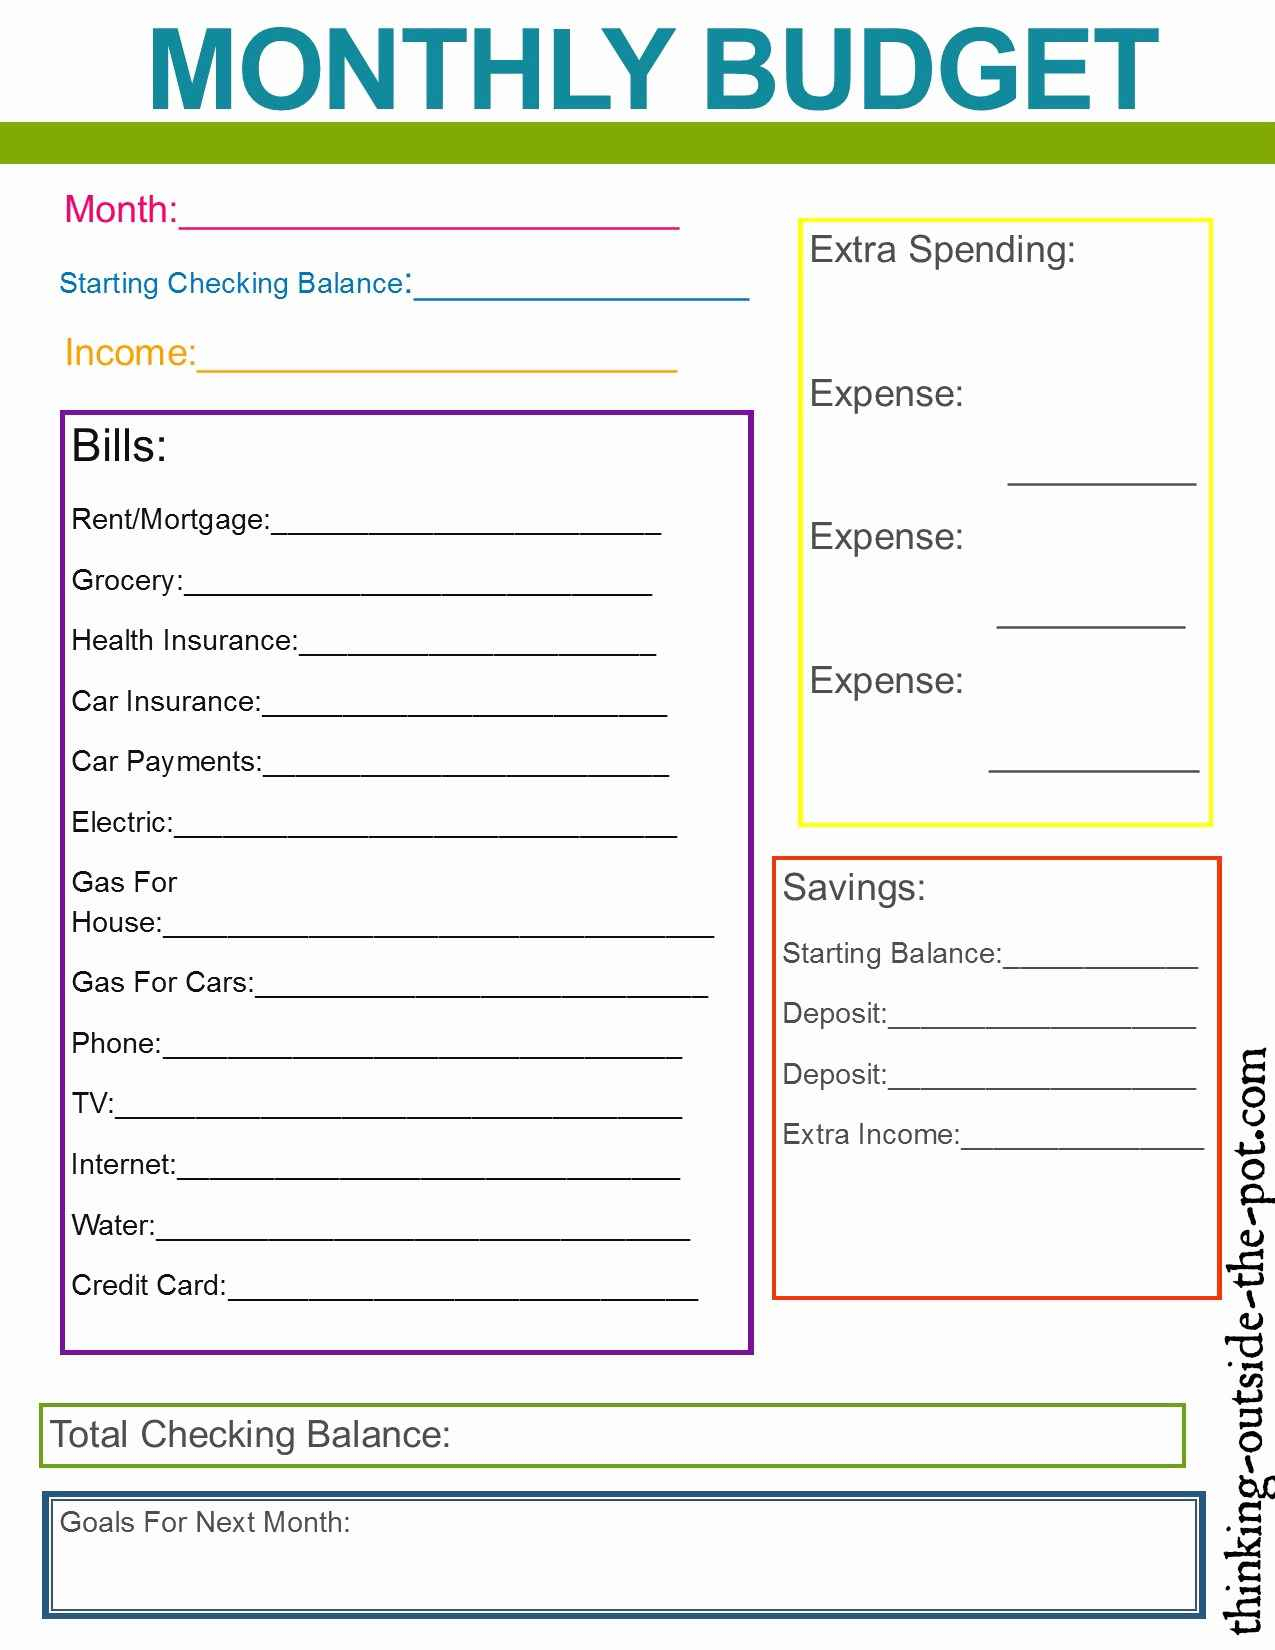 Pour Cost Spreadsheet As Spreadsheet Software Spreadsheet Formulas And Spreadsheet Software